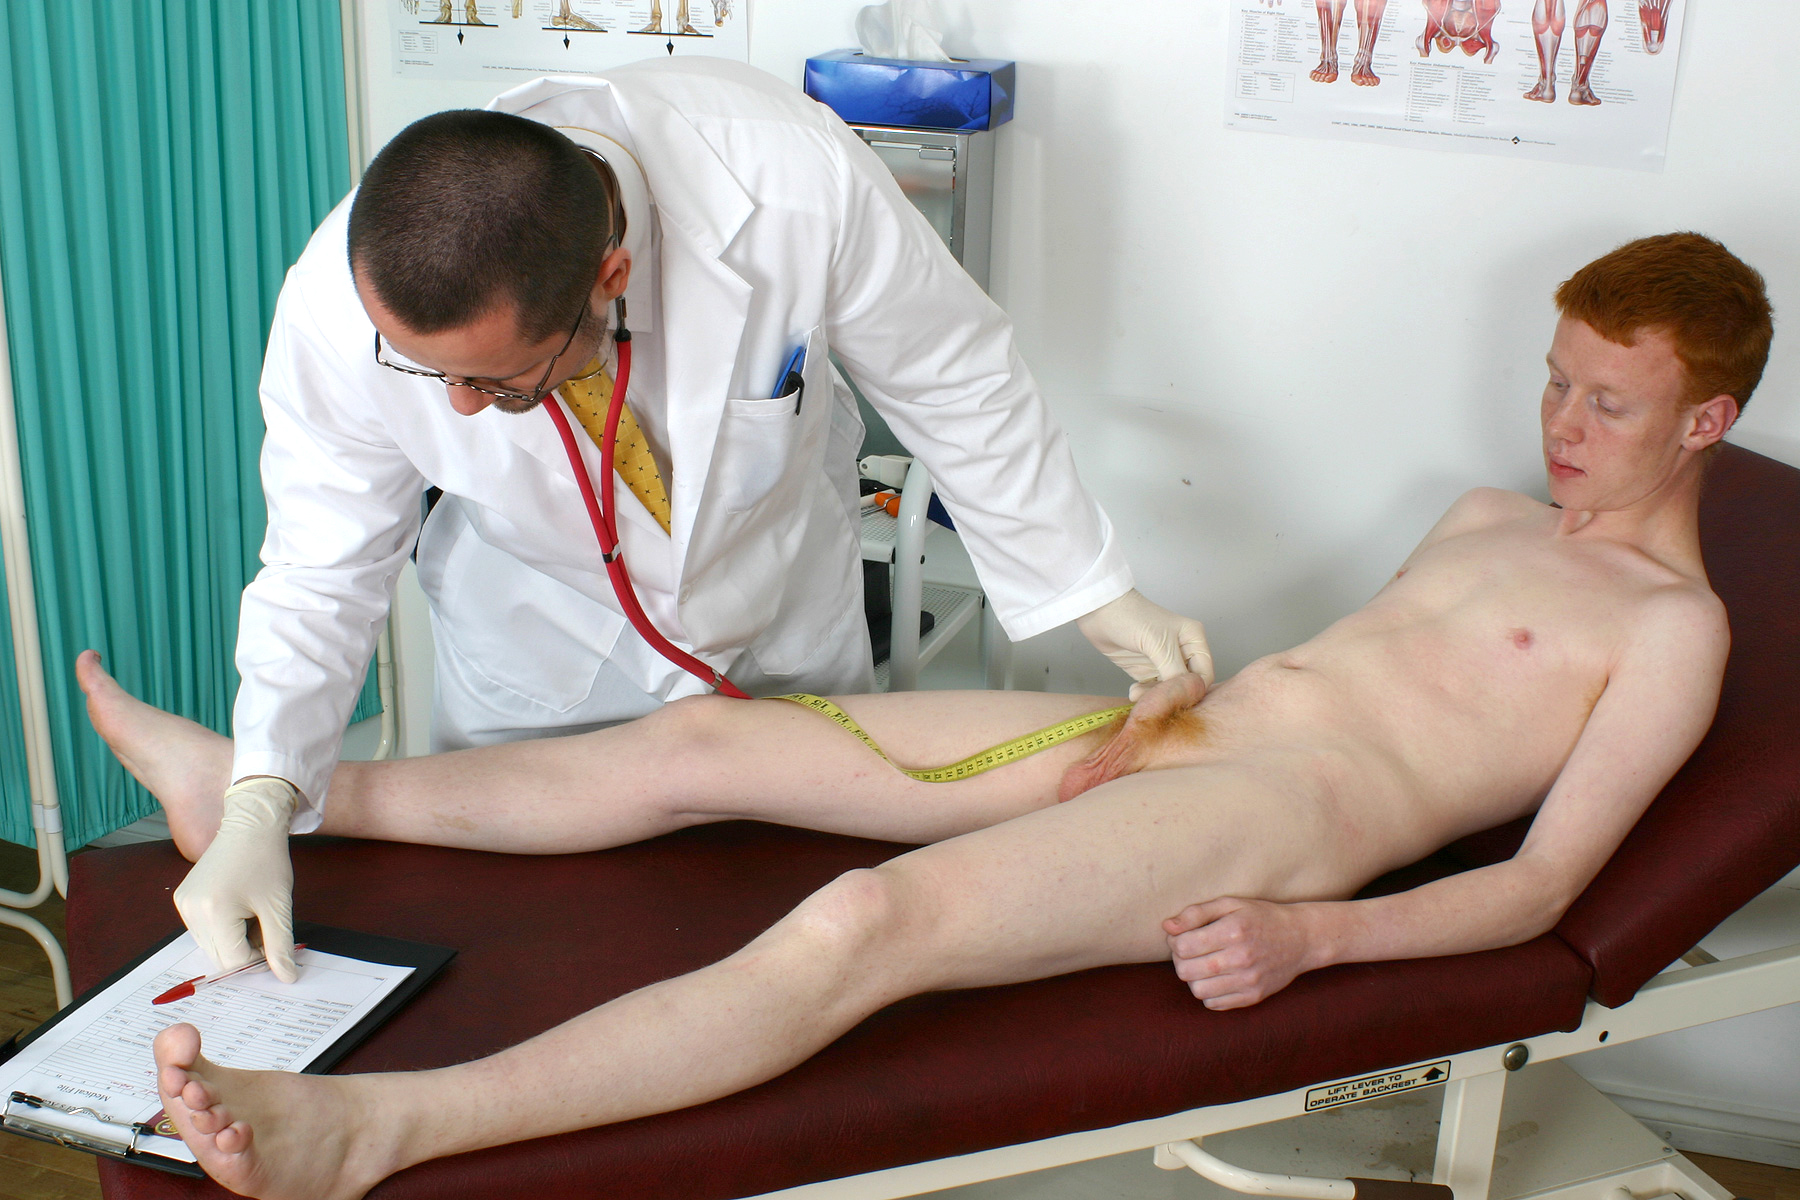 image Gay medical porn boy video snapchat when